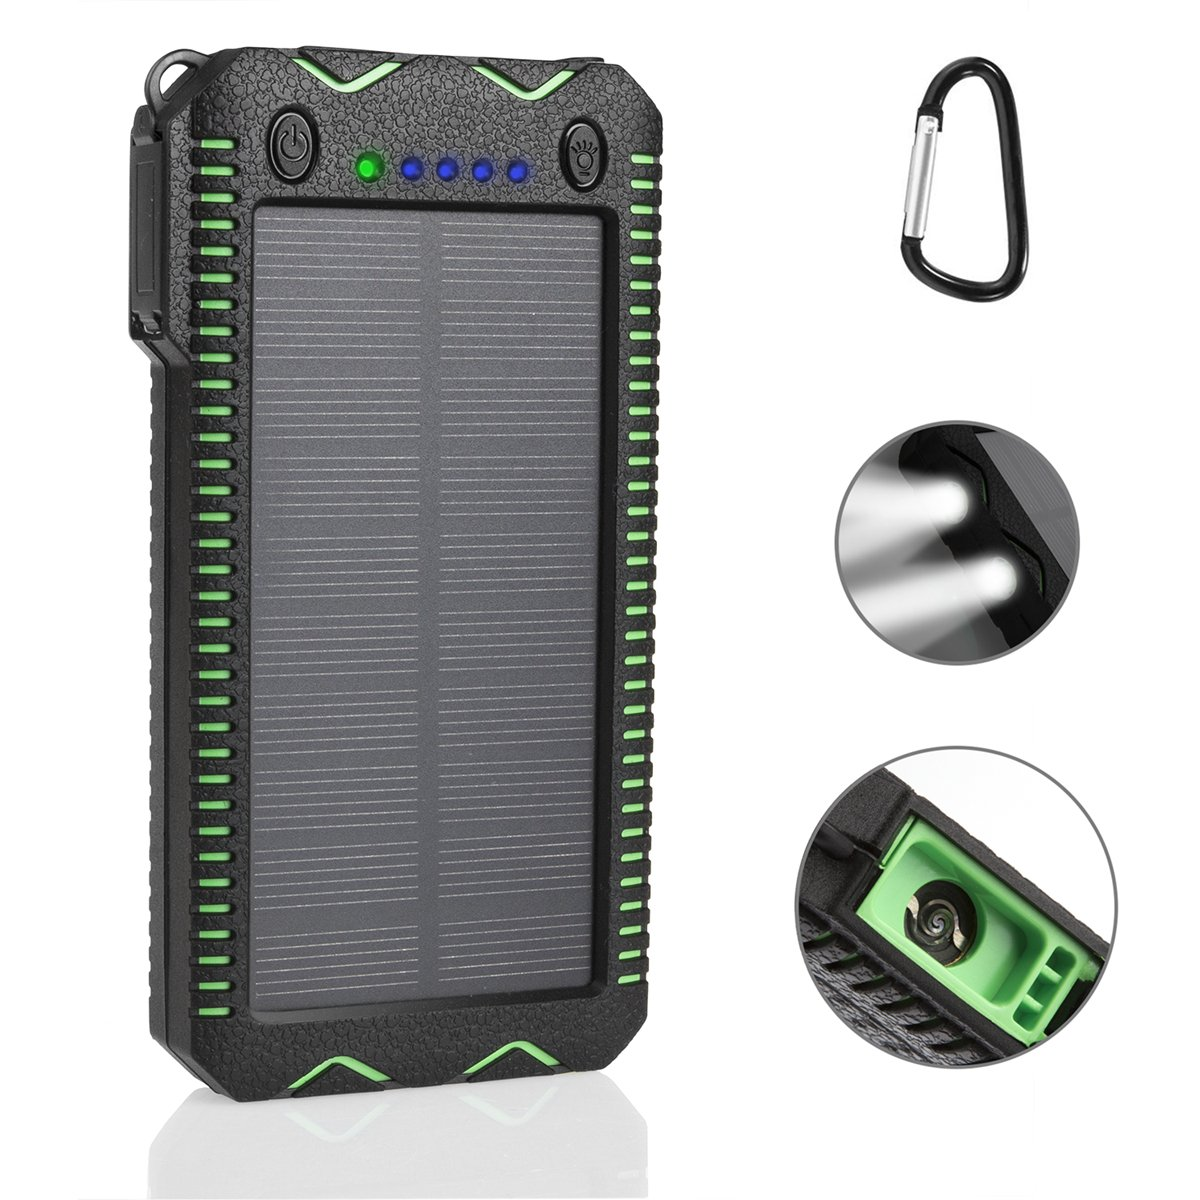 LANIAKEA 15000mAh Fire Starter Solar Charger, Dual USB External Battery Pack with 2 LED Lights Solar Panel Portable Charger Outdoor (Rainproof, Dust-proof, Shockproof), Green